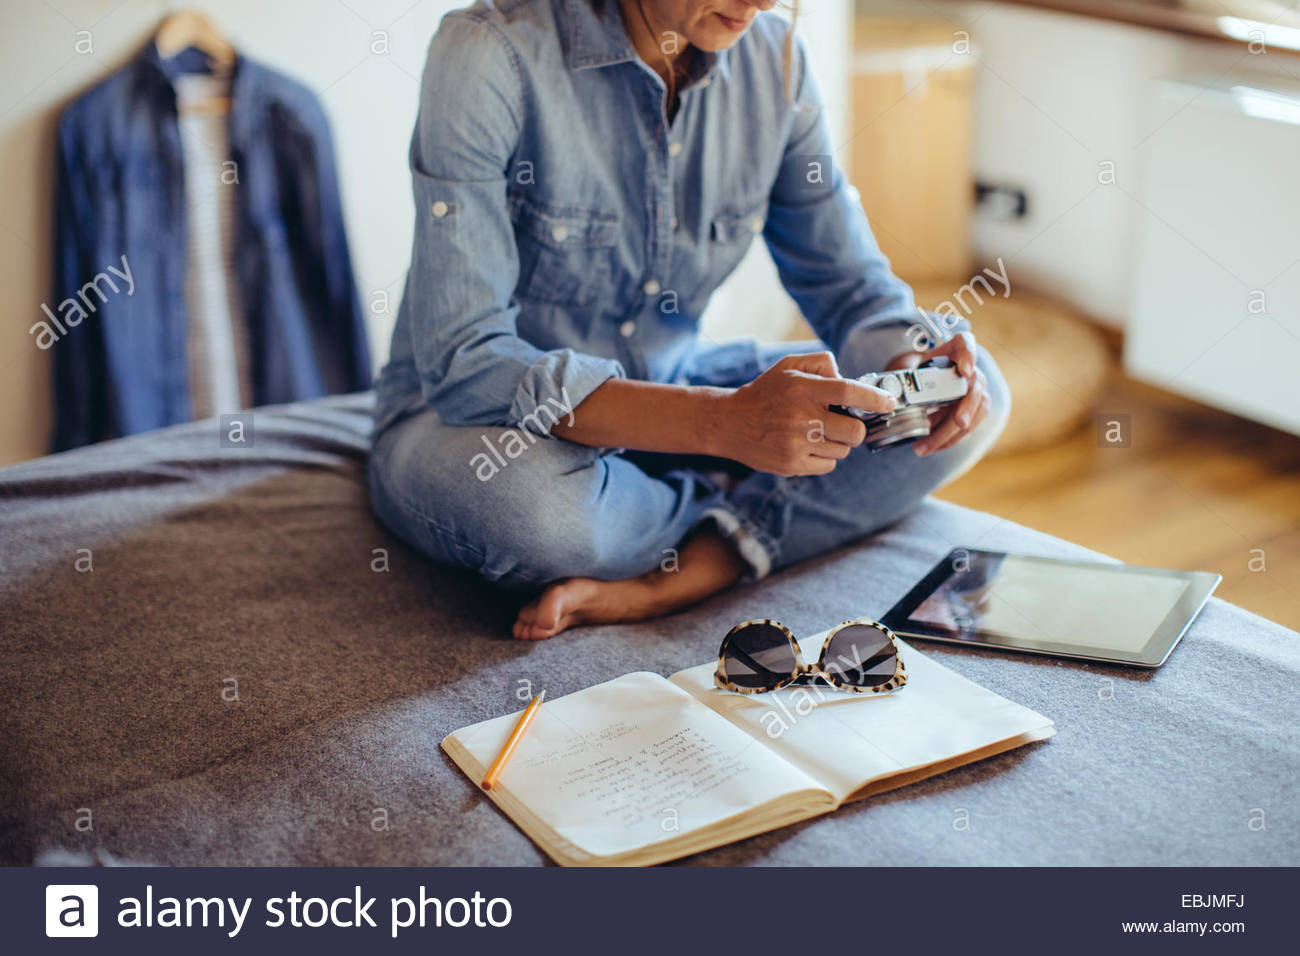 Mid adult woman sitting on bed reviewing photographs on digital SLR camera - Stock Image